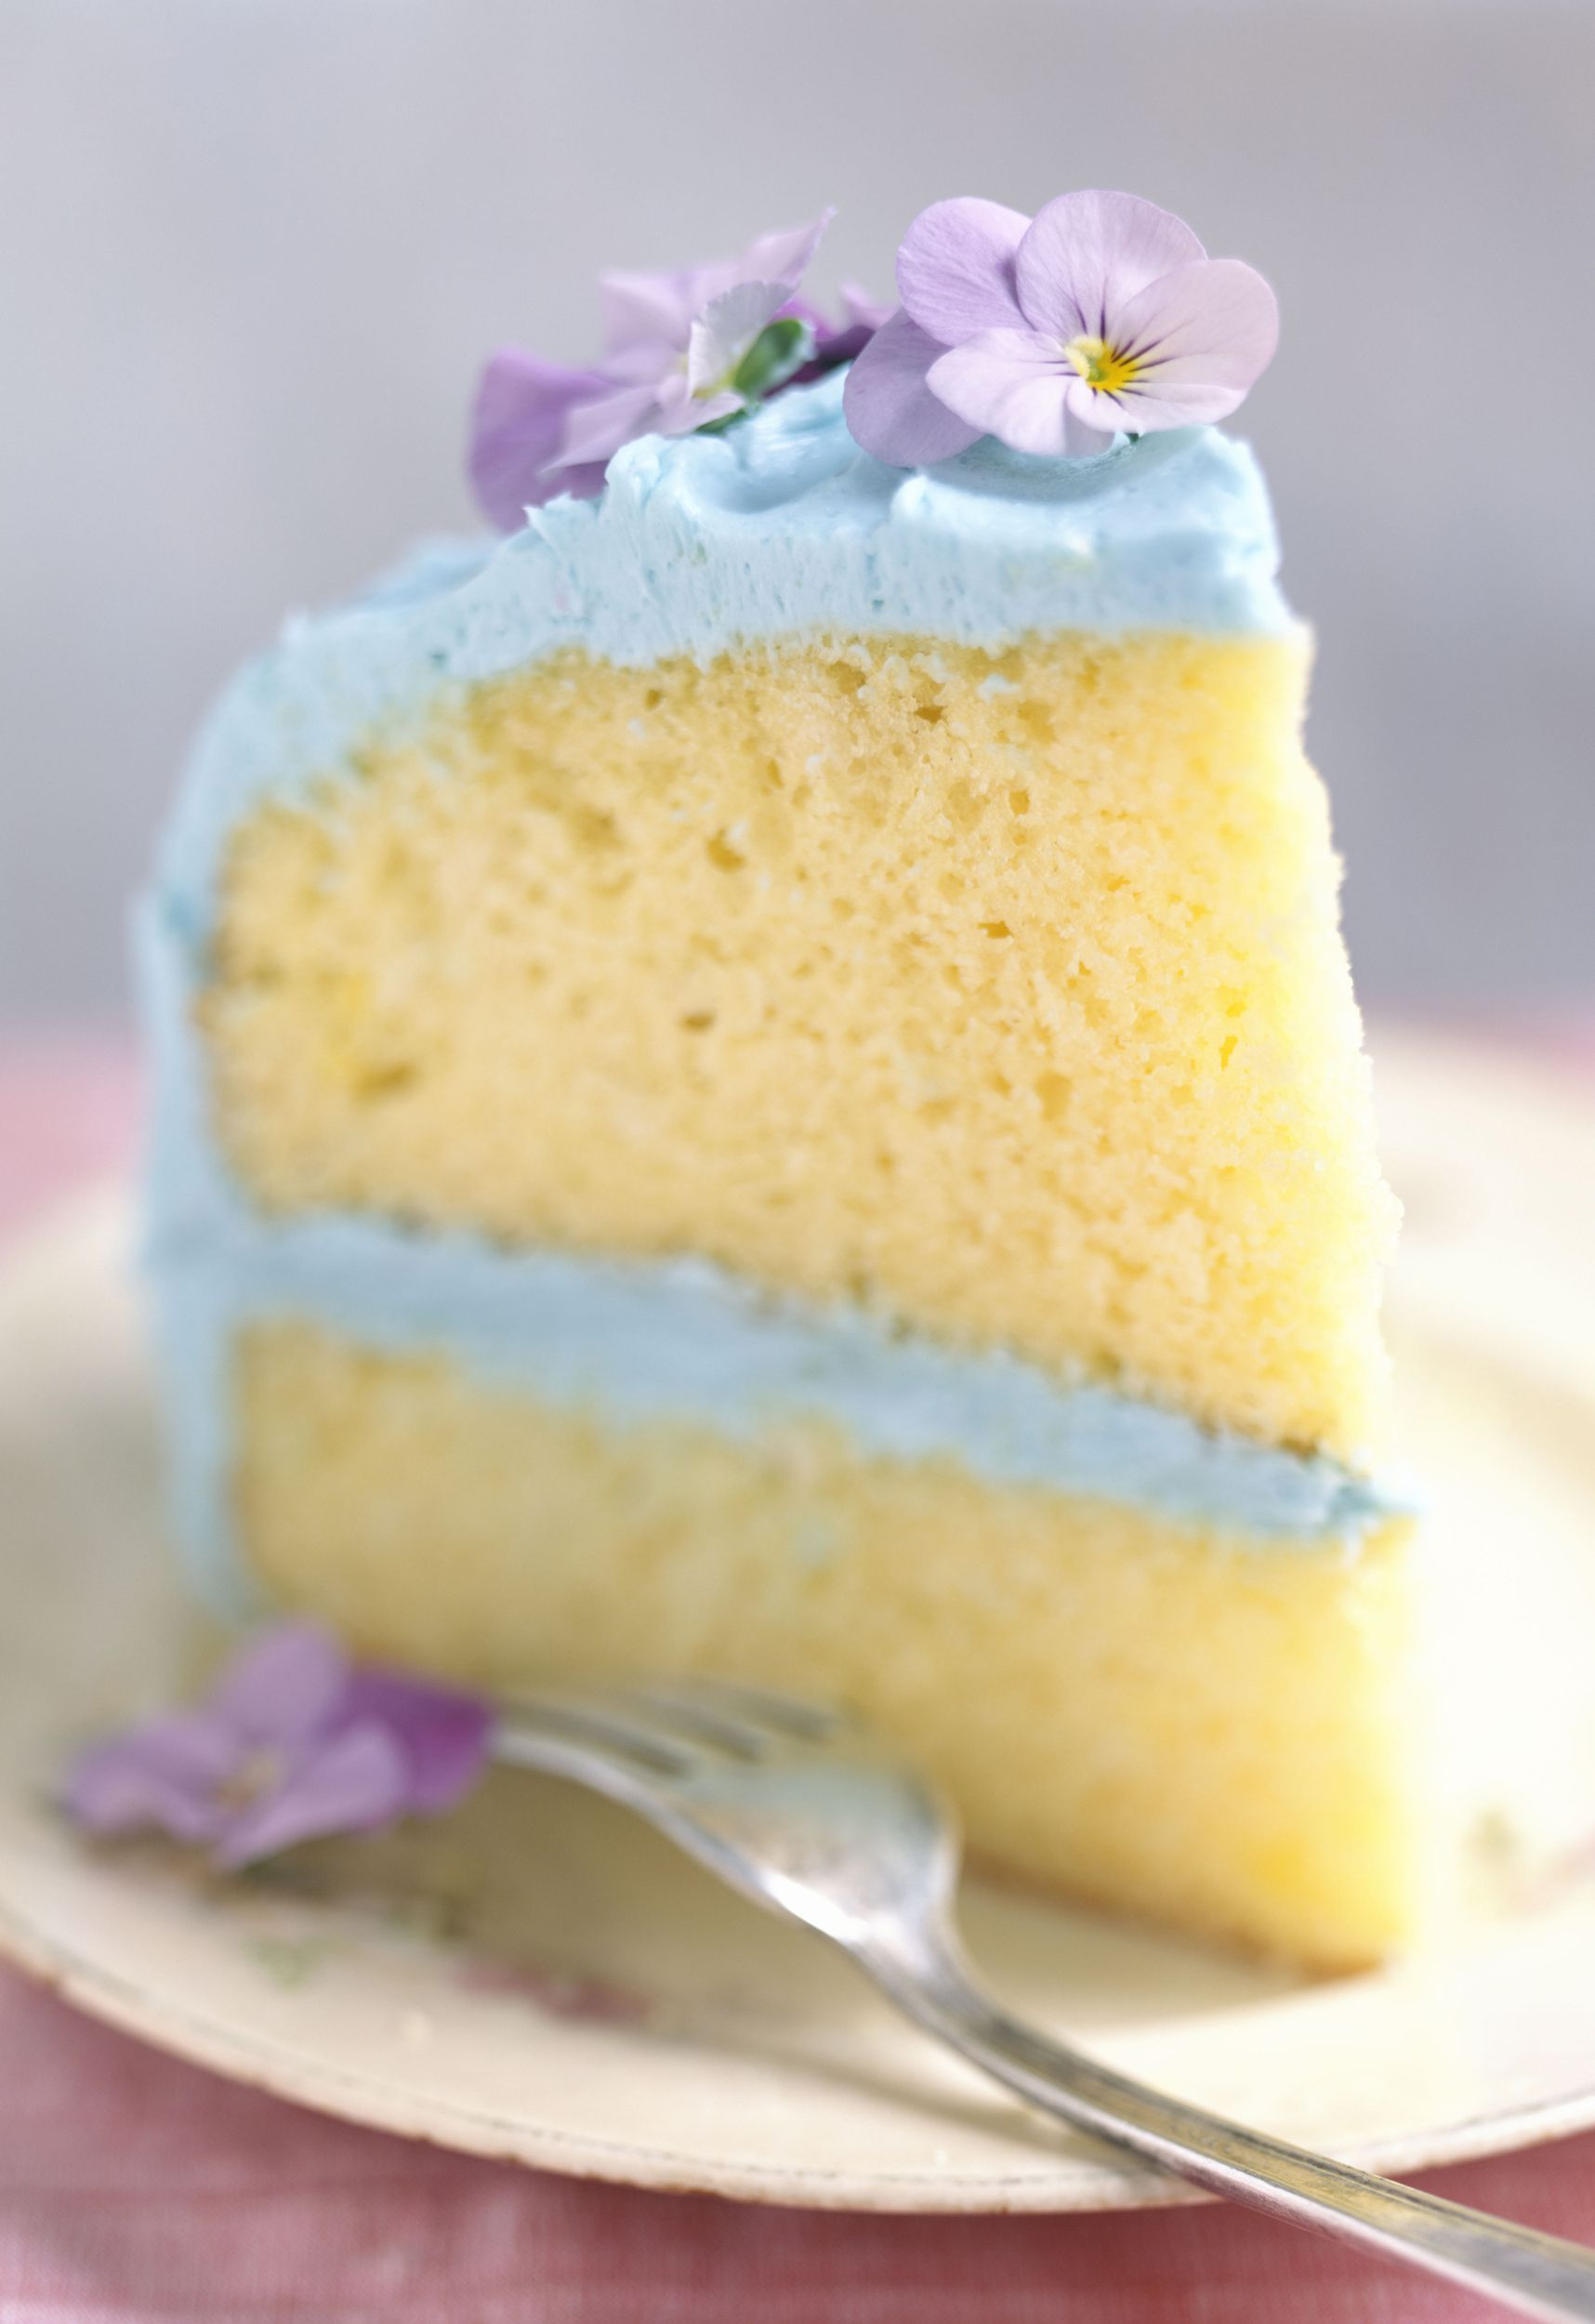 This vanilla cake recipe makes about 4 cups of cake batter to fill ...